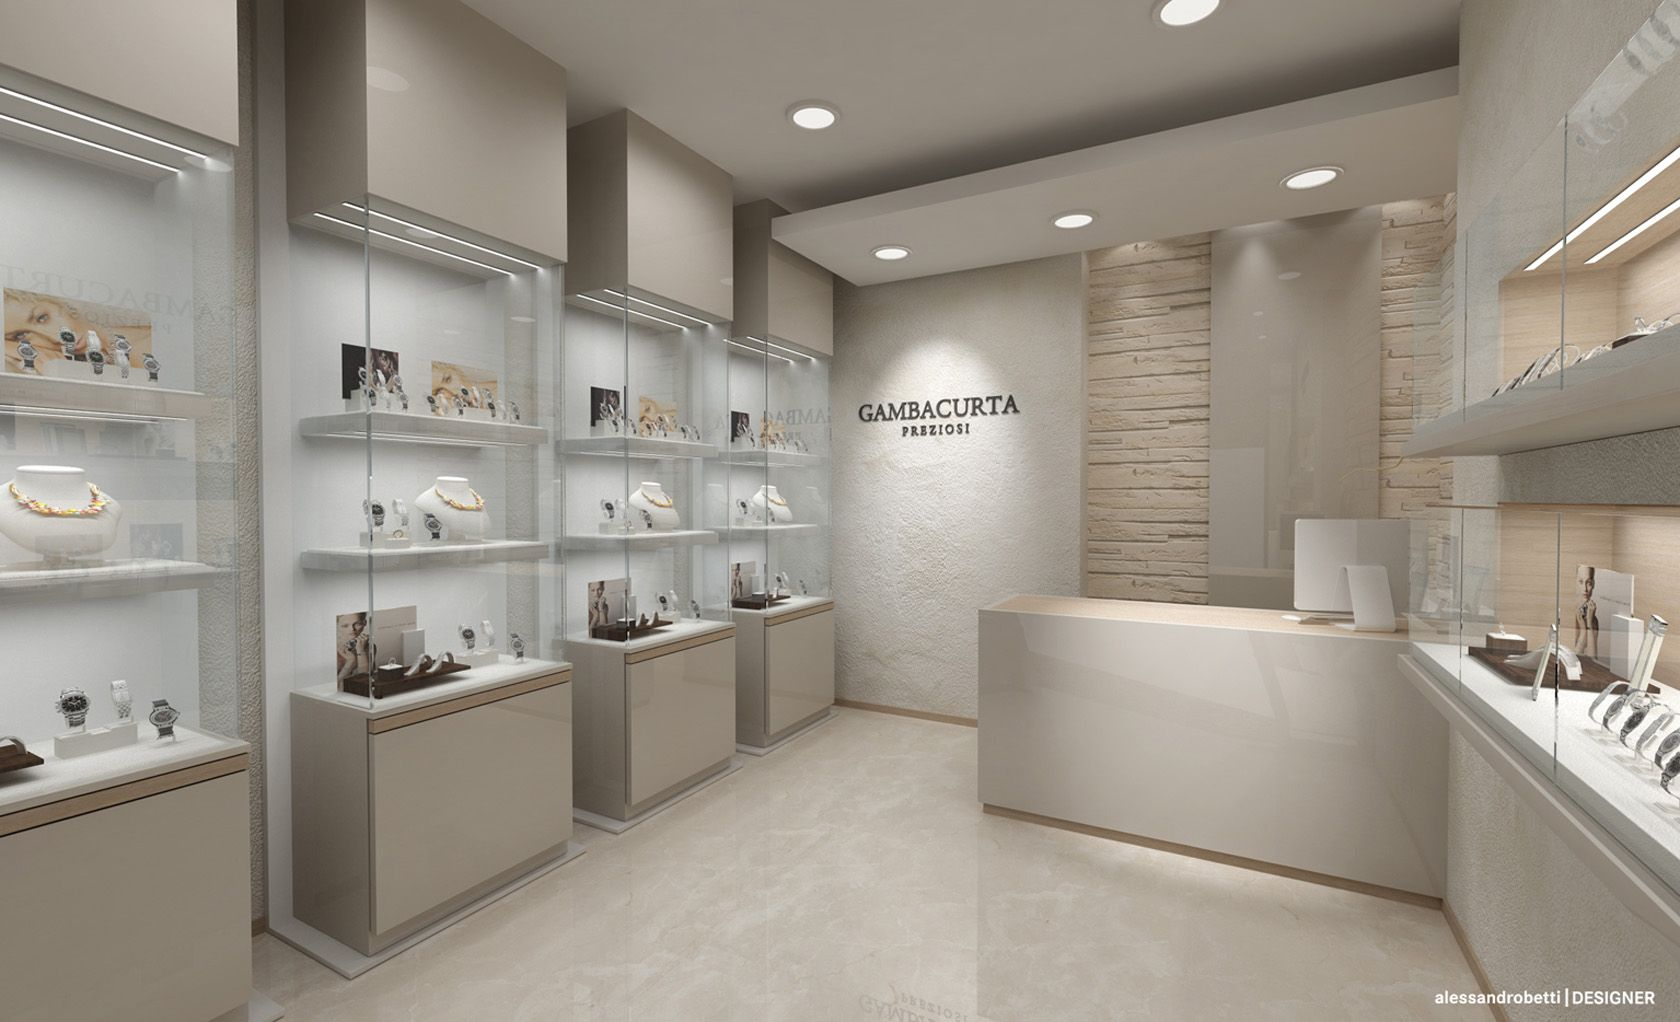 Bmbdecorline arredamento gioiellerie shop in 2019 for Outlet online arredamento design